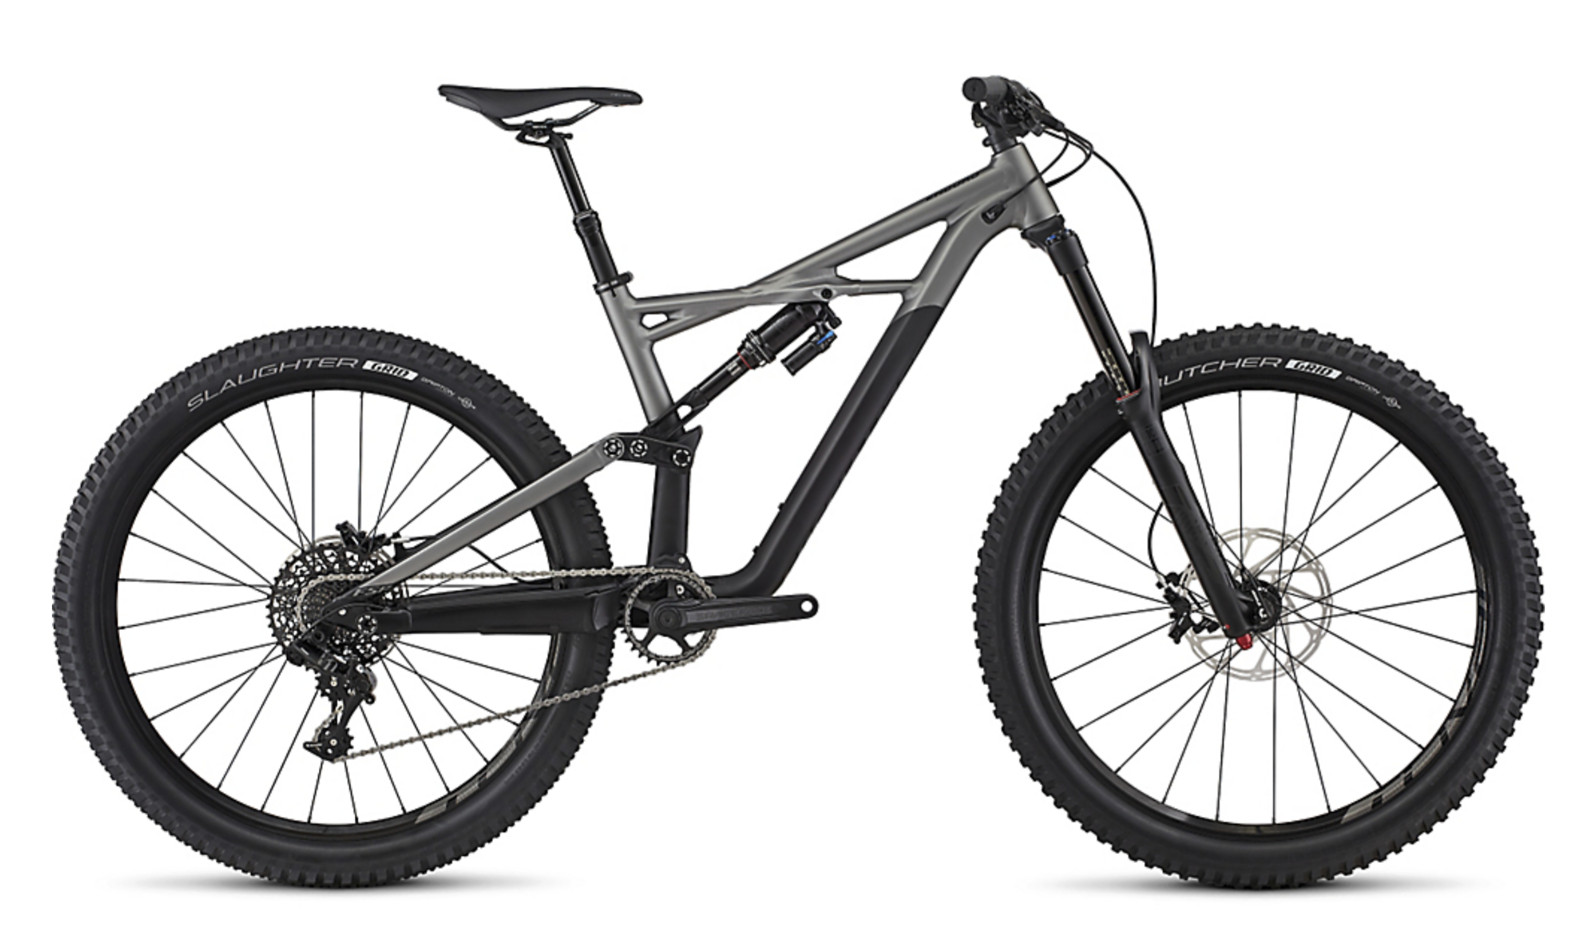 2017 Specialized Enduro Comp 650B Bike (Satin Black/Charcoal)